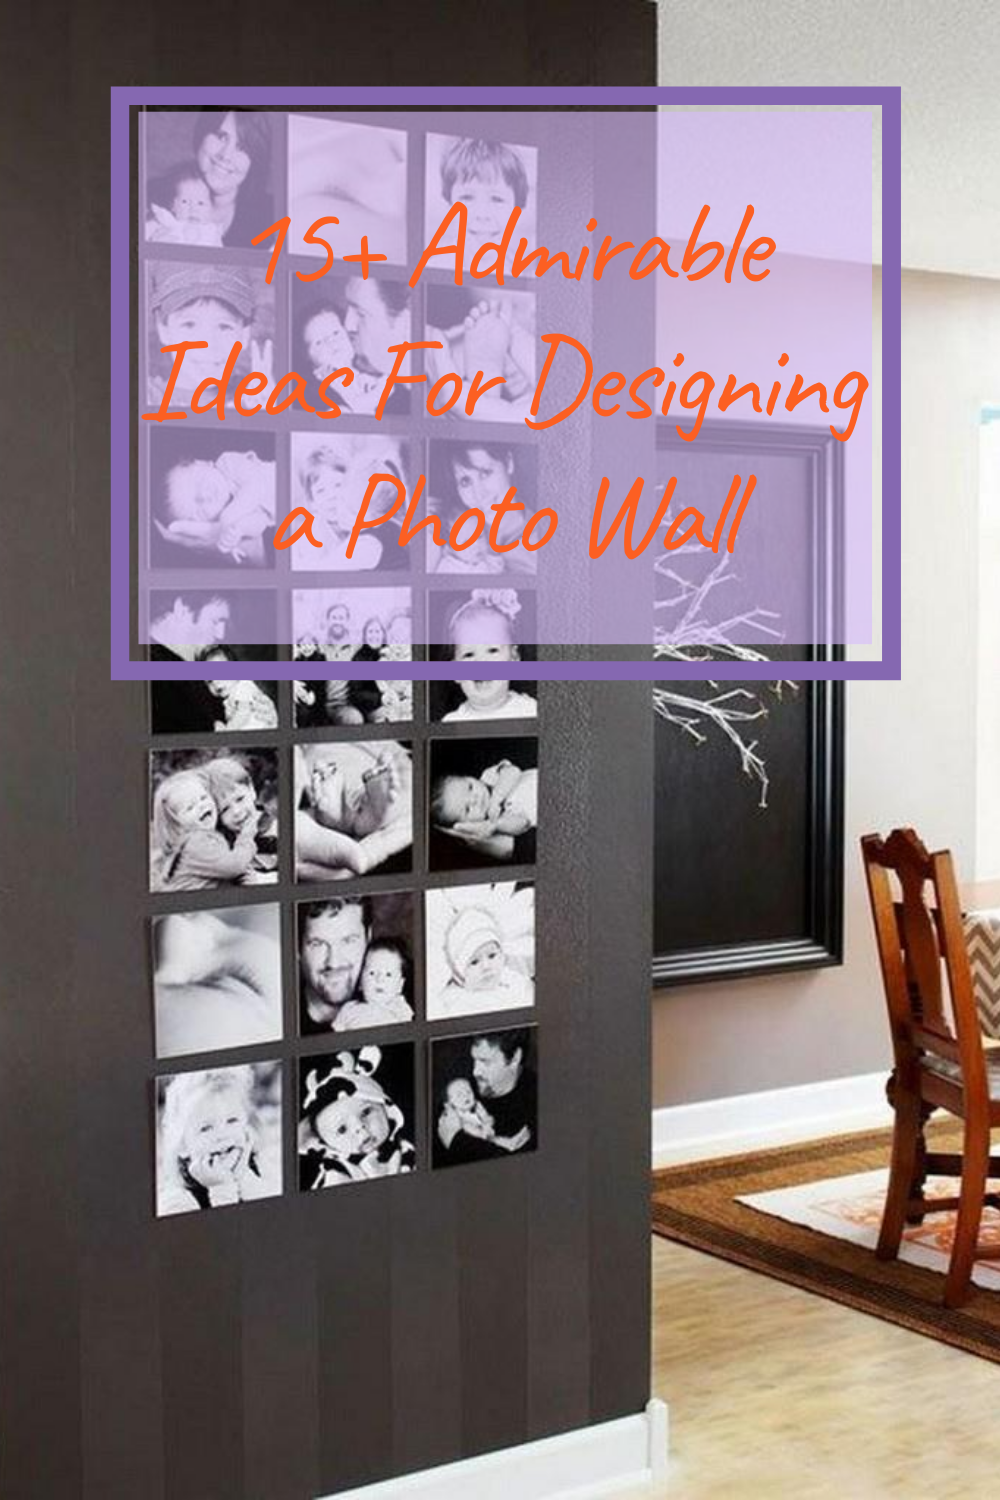 18 Admirable Ideas For Designing A Photo Wall Design Home Decor Decals Decor